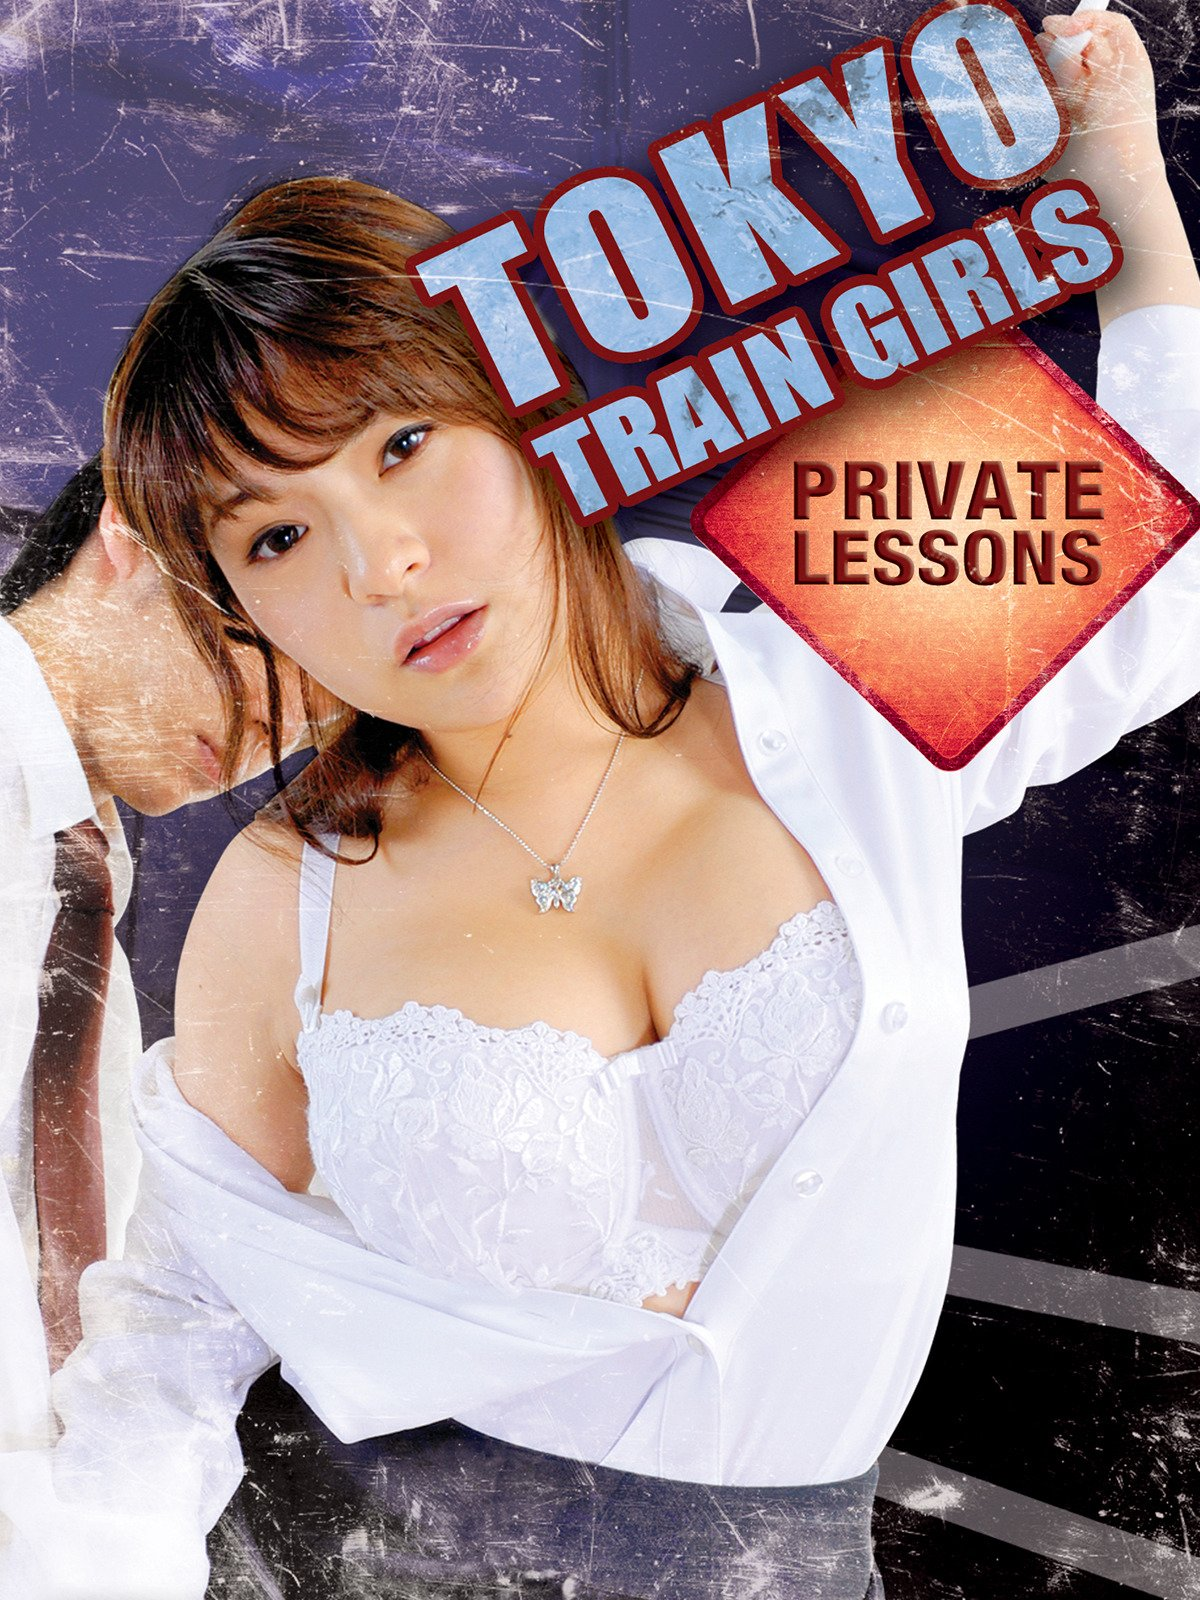 Tokyo Train Girls: Private Lessons